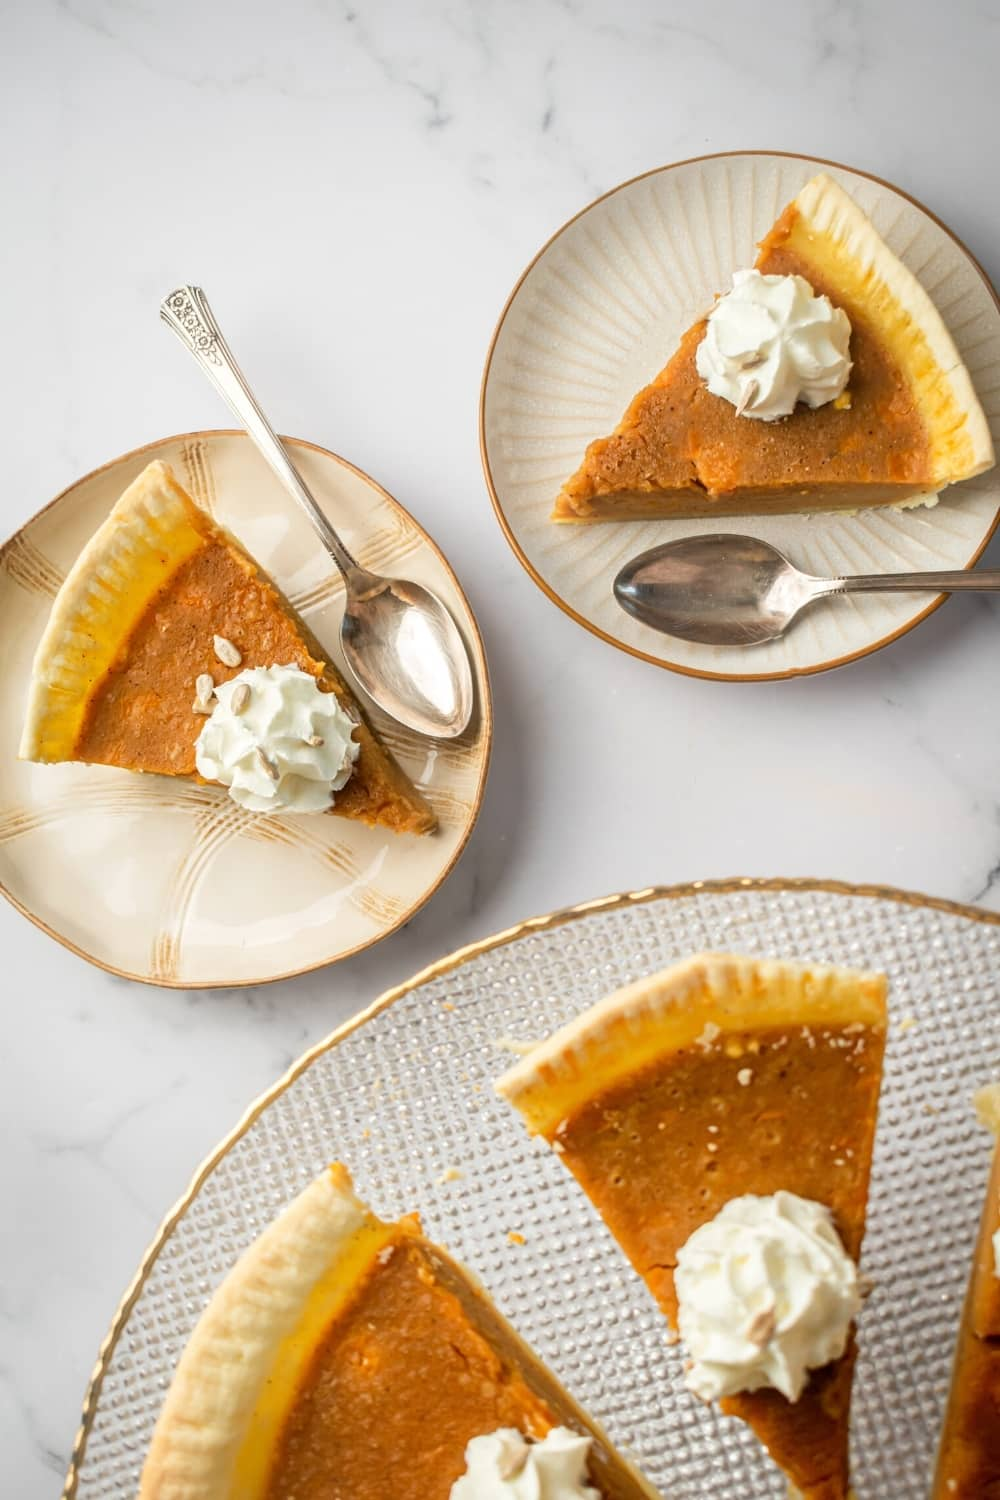 Two white plates with a slice of pumpkin custard pie on each. There are spoons on the plates and in front of them is part of two slices of pumpkin custard pie on a glass serving dish.